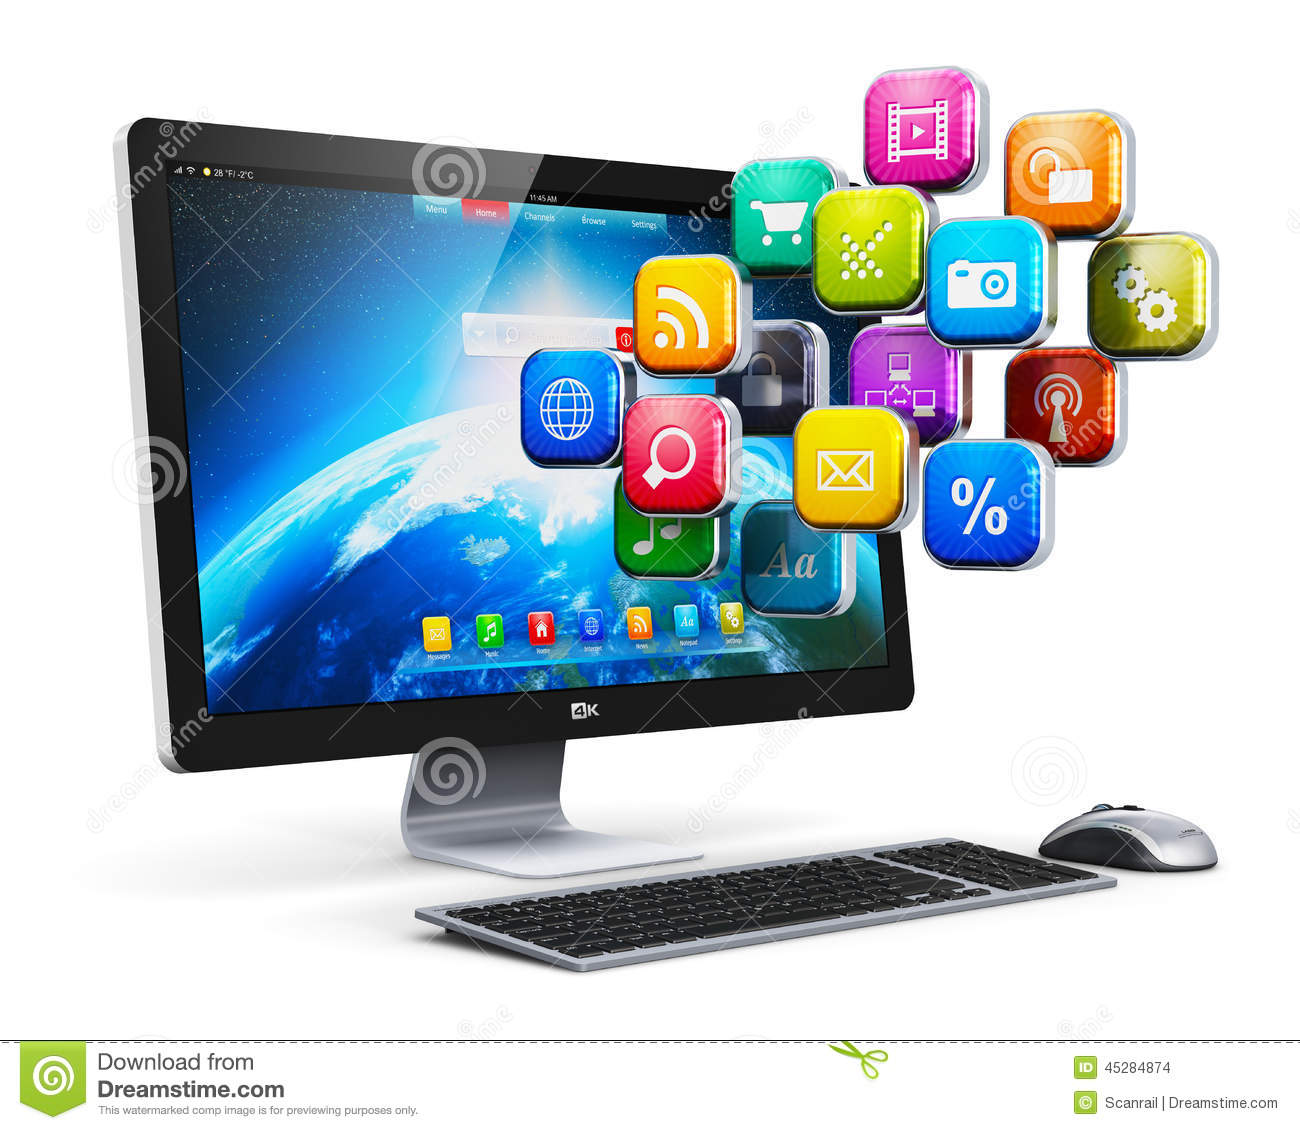 Specialized computer applications